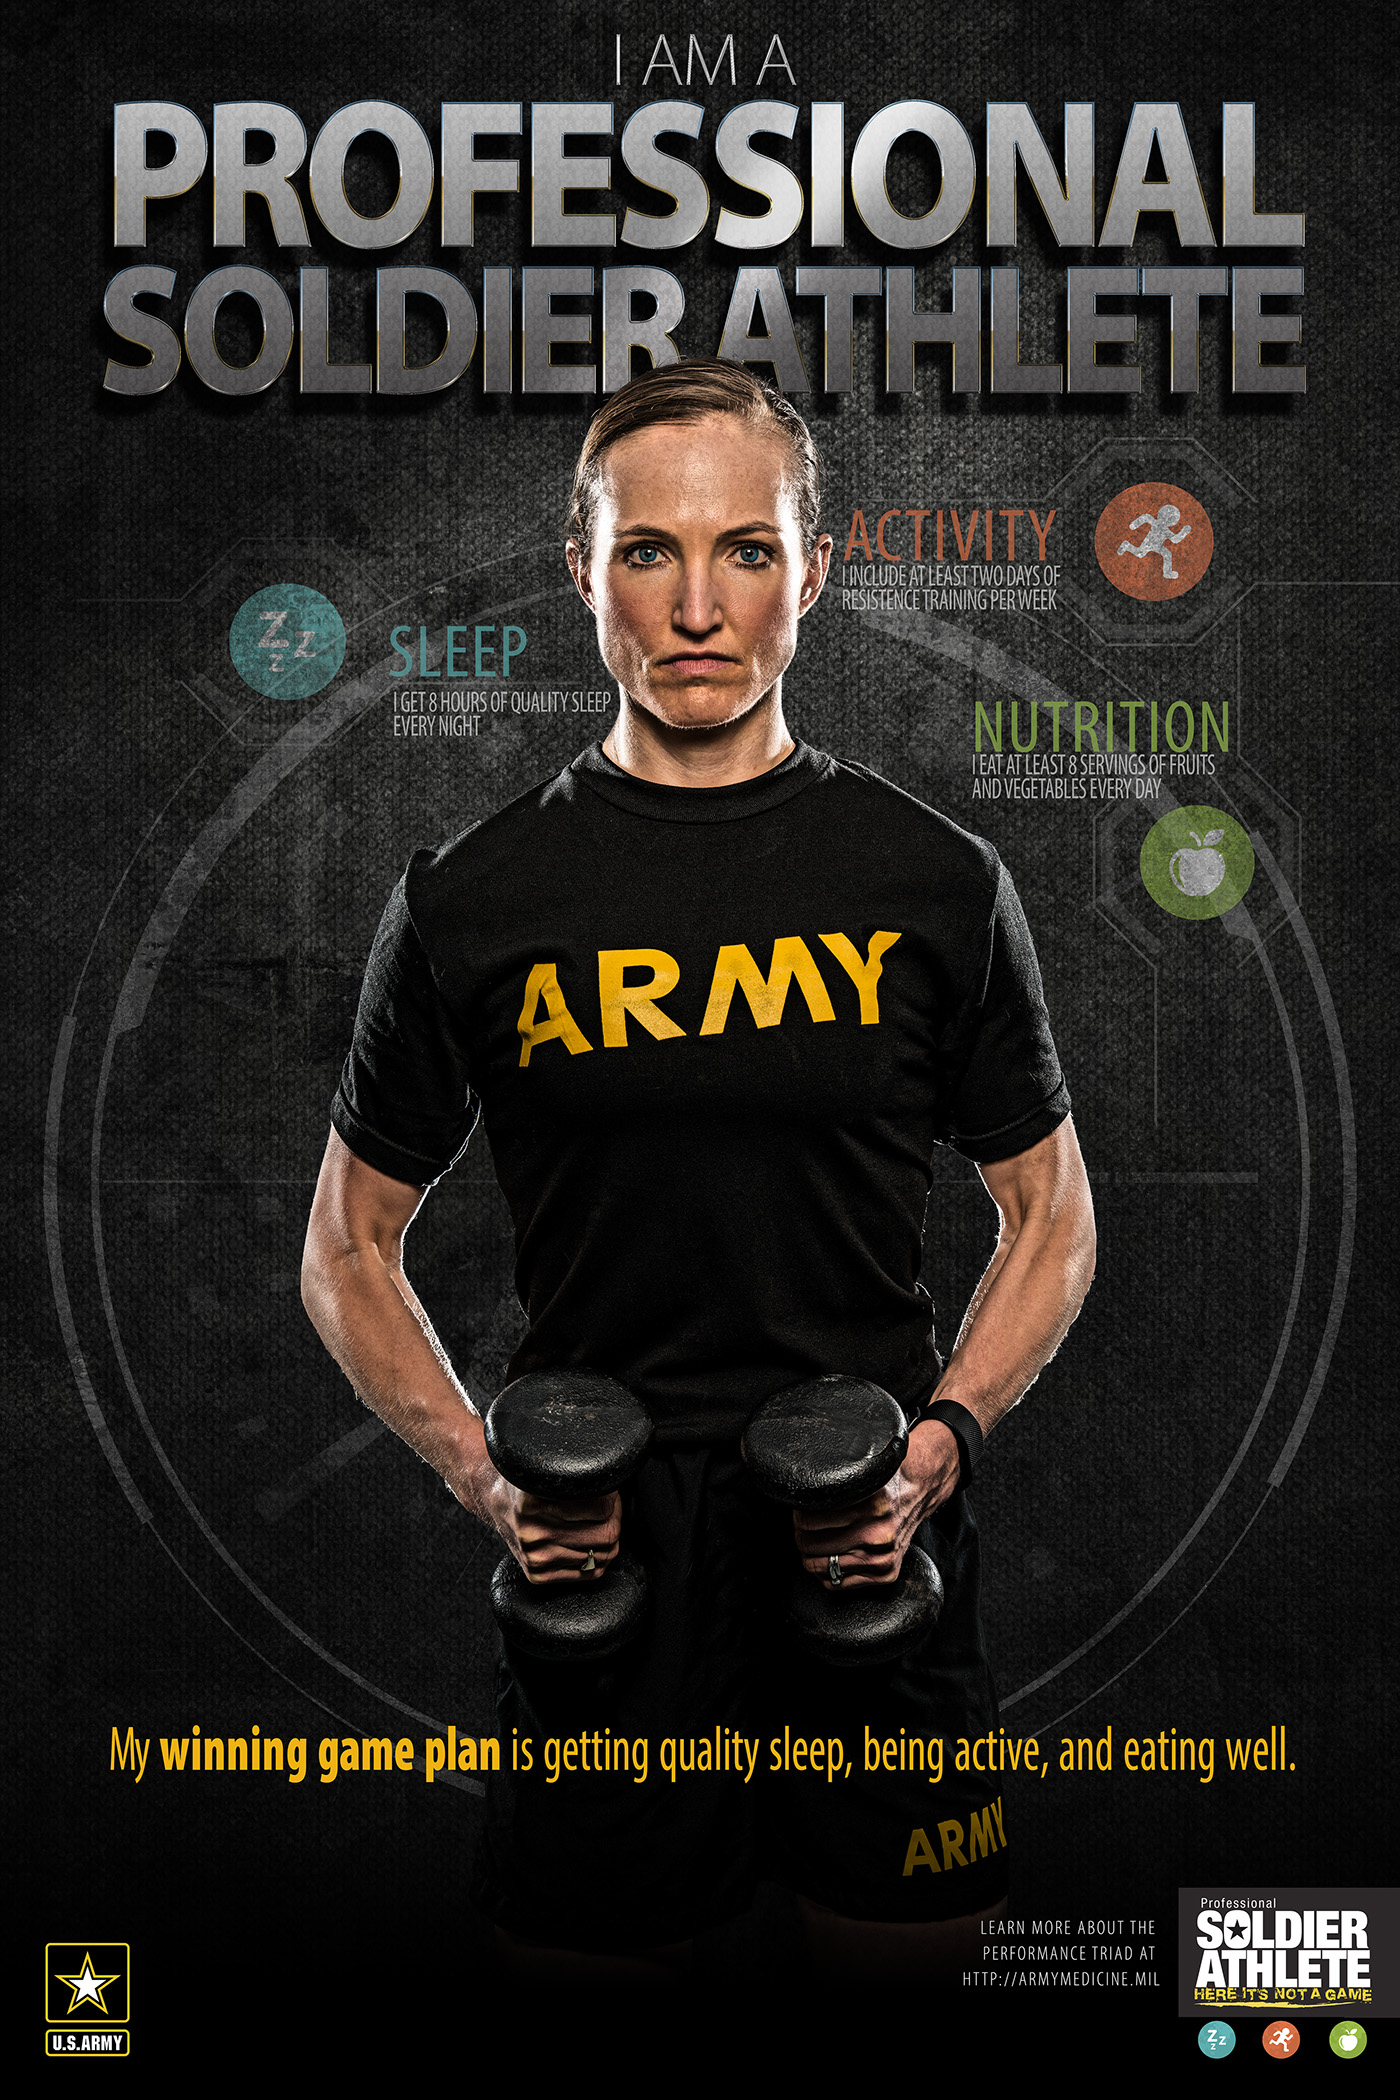 Unstoppable Professional Soldier Athlete Series On Behance